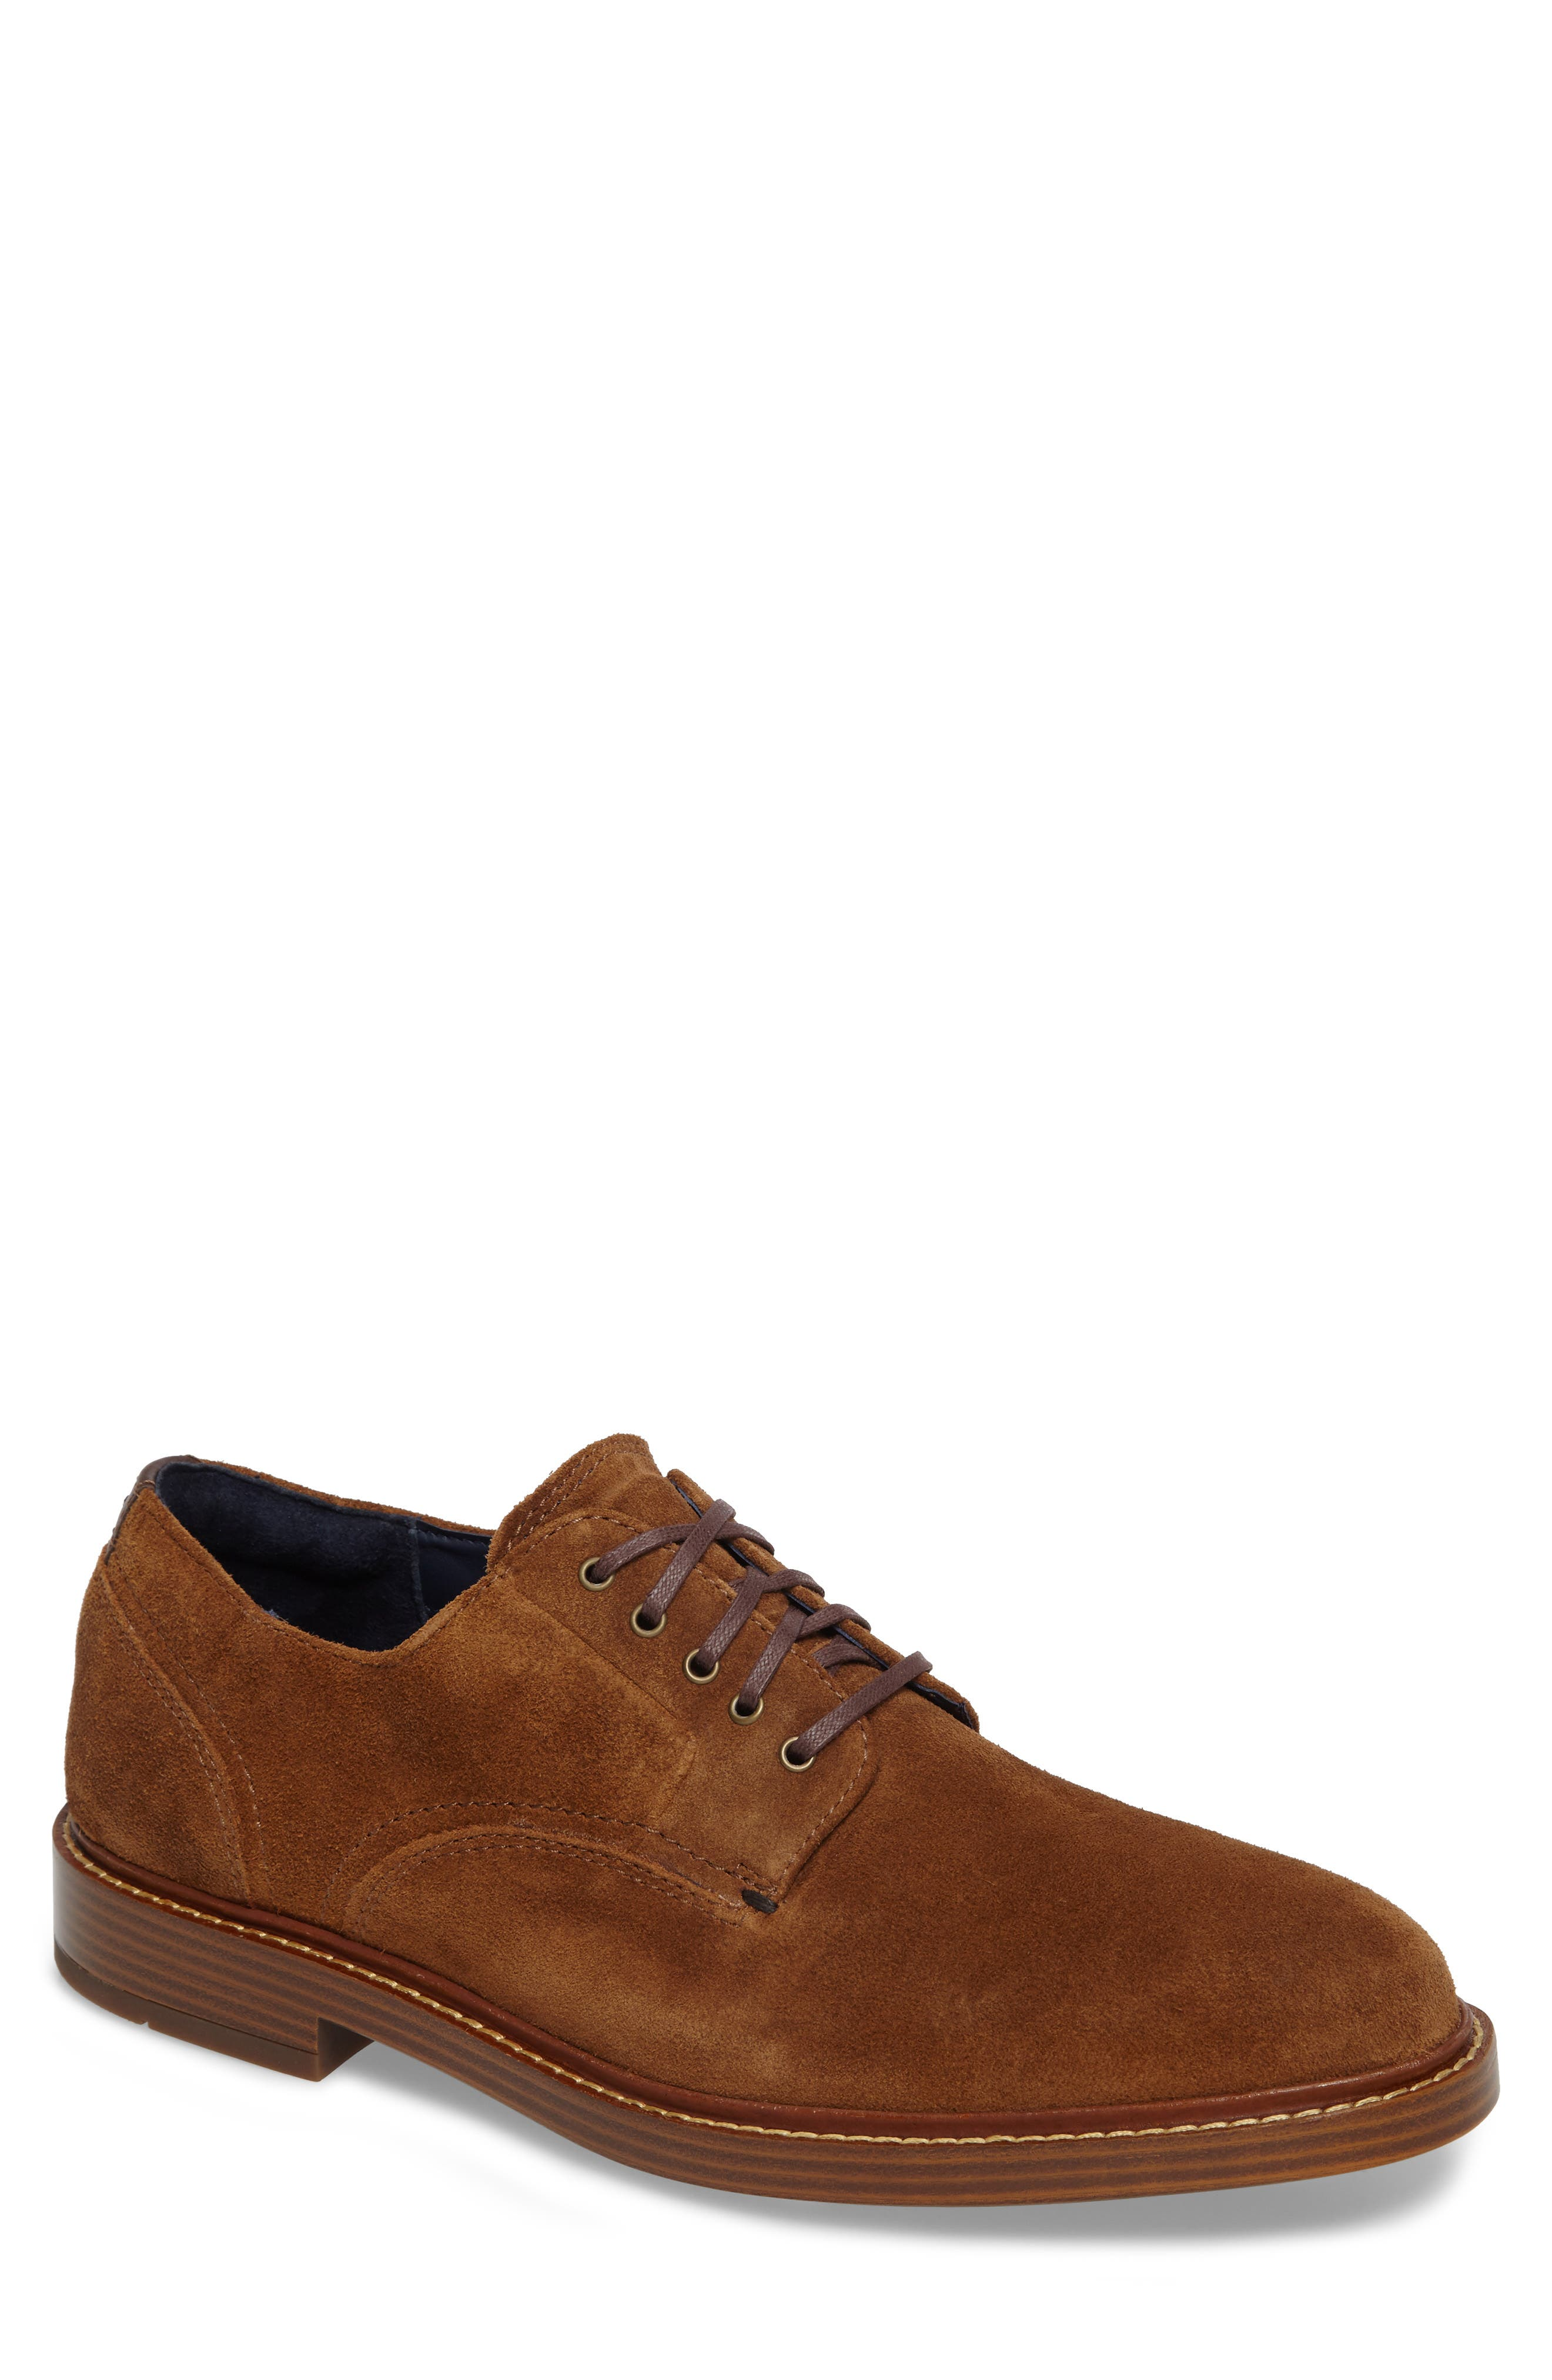 COLE HAAN Adams Grand Plain Toe Oxford